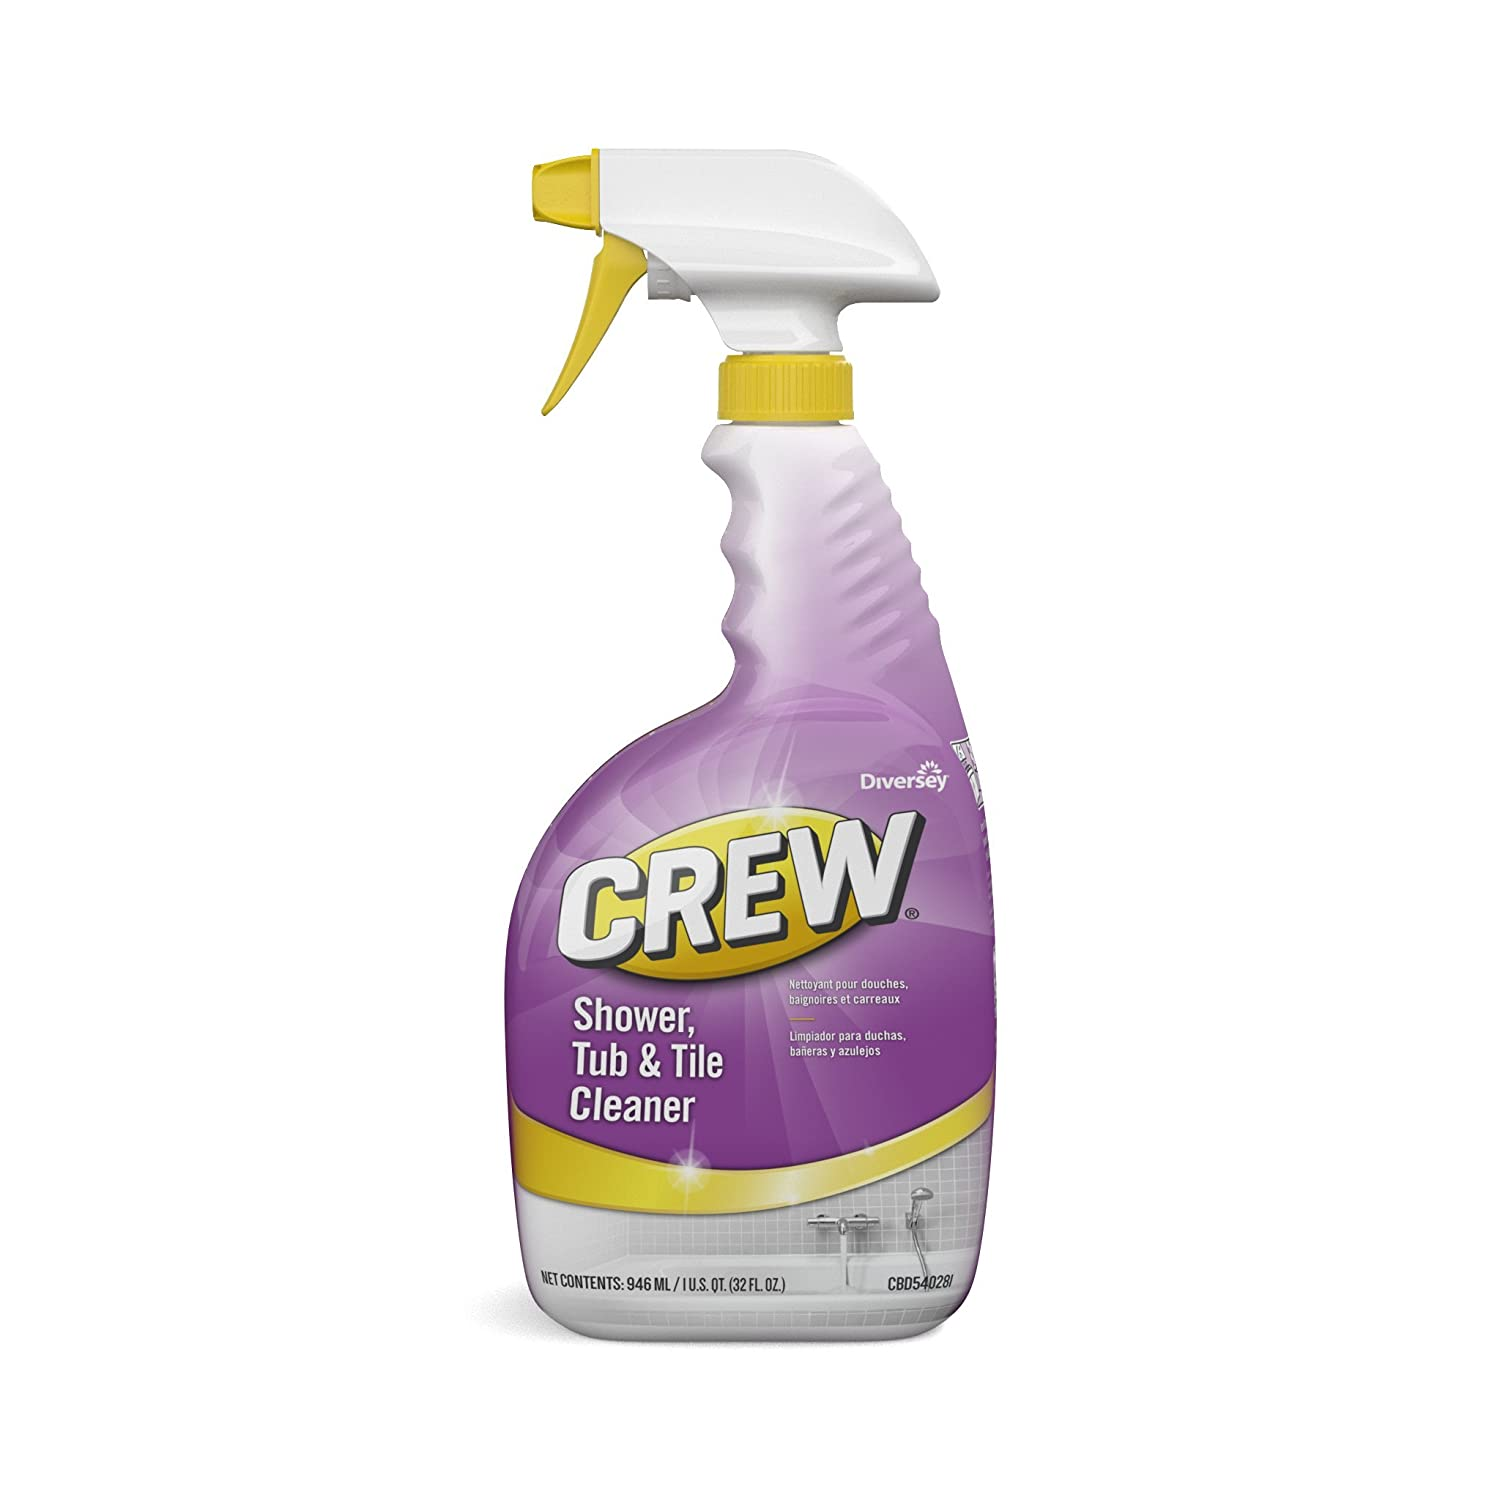 Diversey Crew Shower Tub and Tile Cleaner New popularity oz. mL Dedication 946 Spray B 32